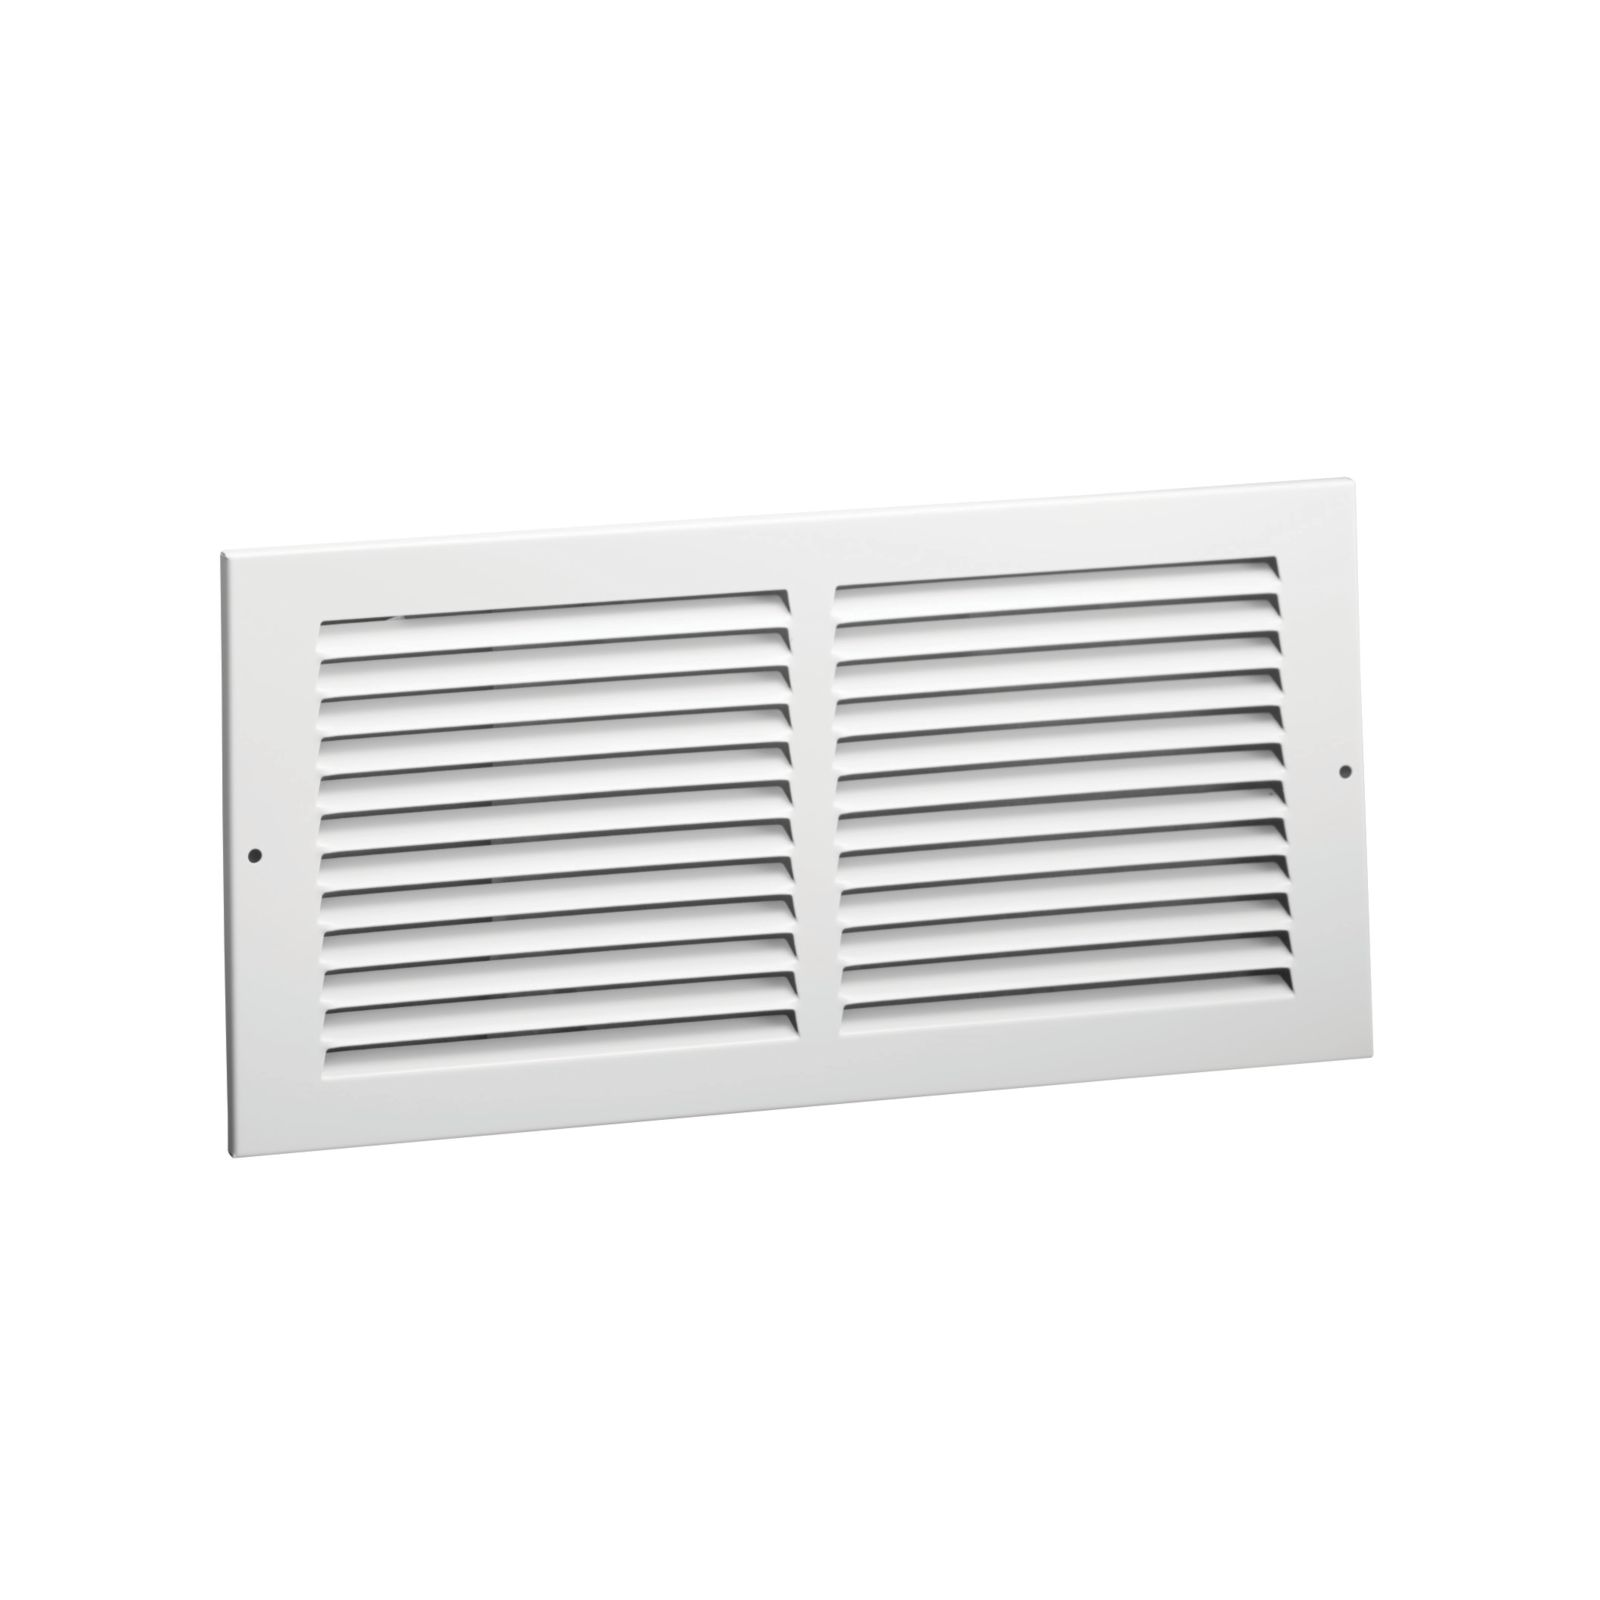 "Hart & Cooley 043350 - #672 Steel Return Air Grille, White Finish, 20"" X 6"""